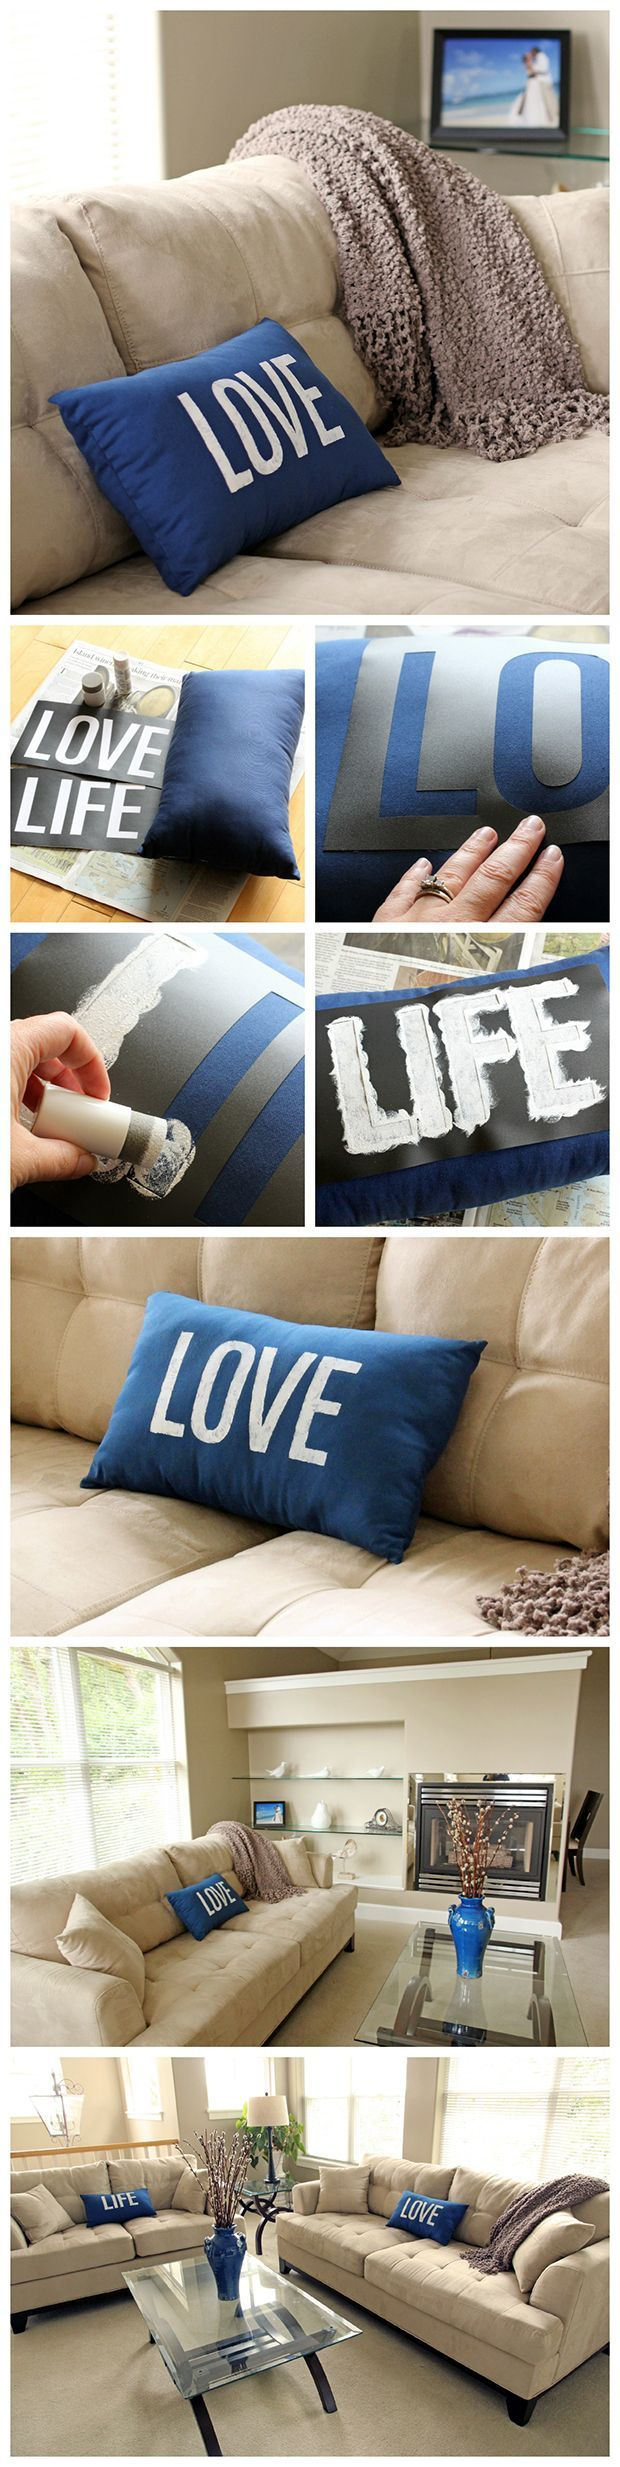 "Spruce up a boring old pillow. Simply stencil the word ""Love"" or ""Life"" on it and breathe new life into the pillow. Free .svg and .ai8 printable files included. #DailyLifeBuff"